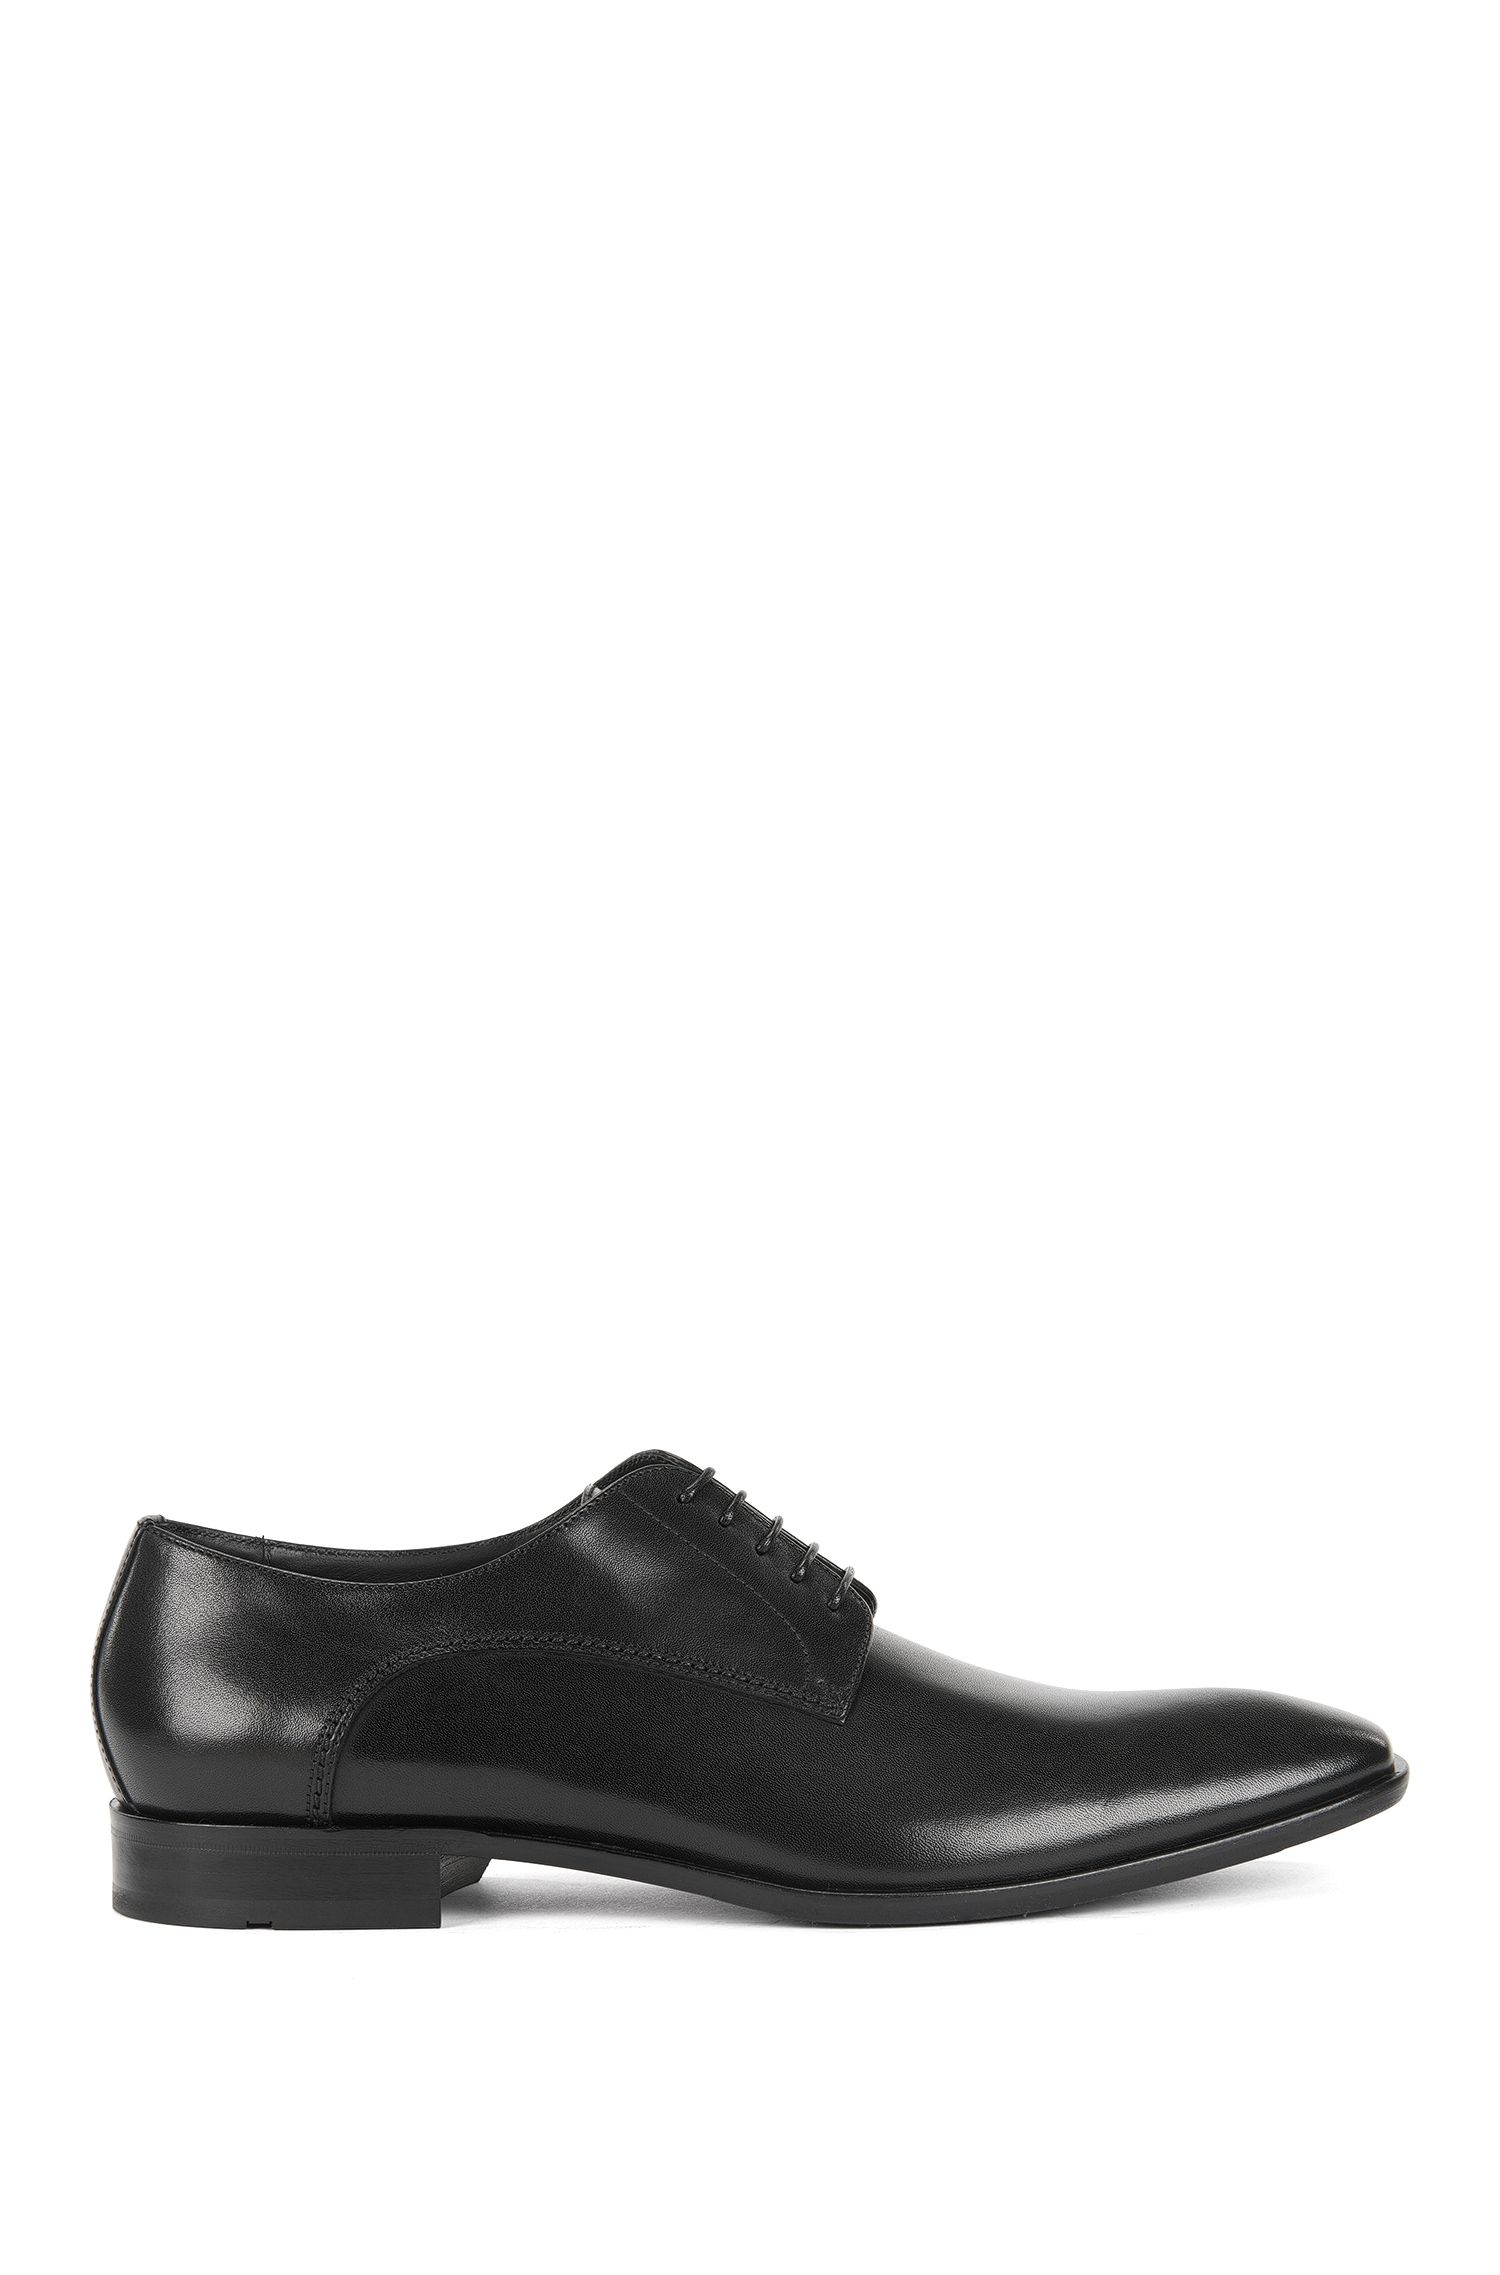 Leather Derby shoes with antique finish, Black